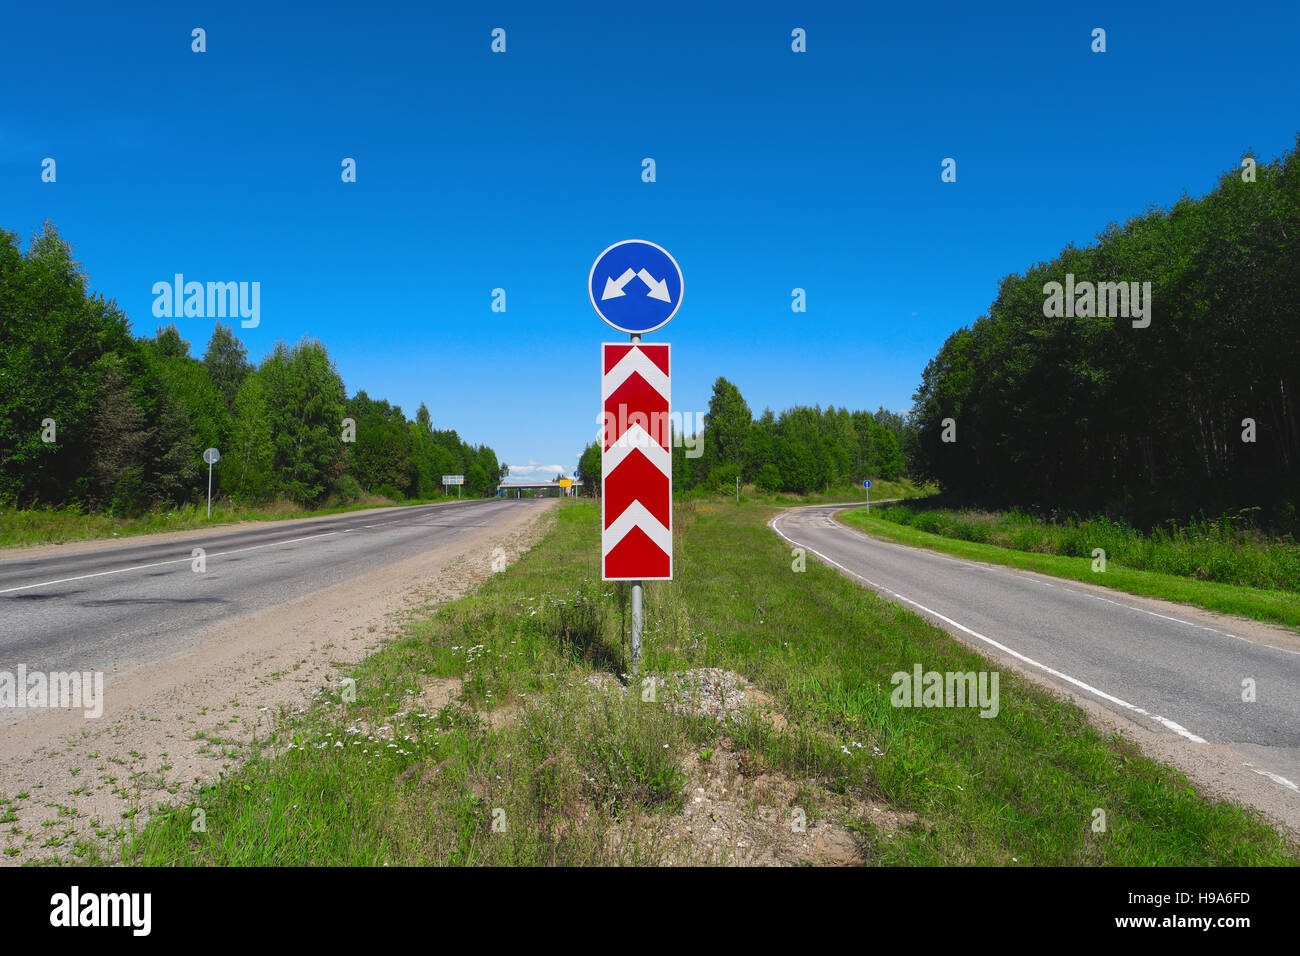 Road sign with arrows. Two different directions. Concept of choose the correct way. Right and left directional traffic - Stock Image